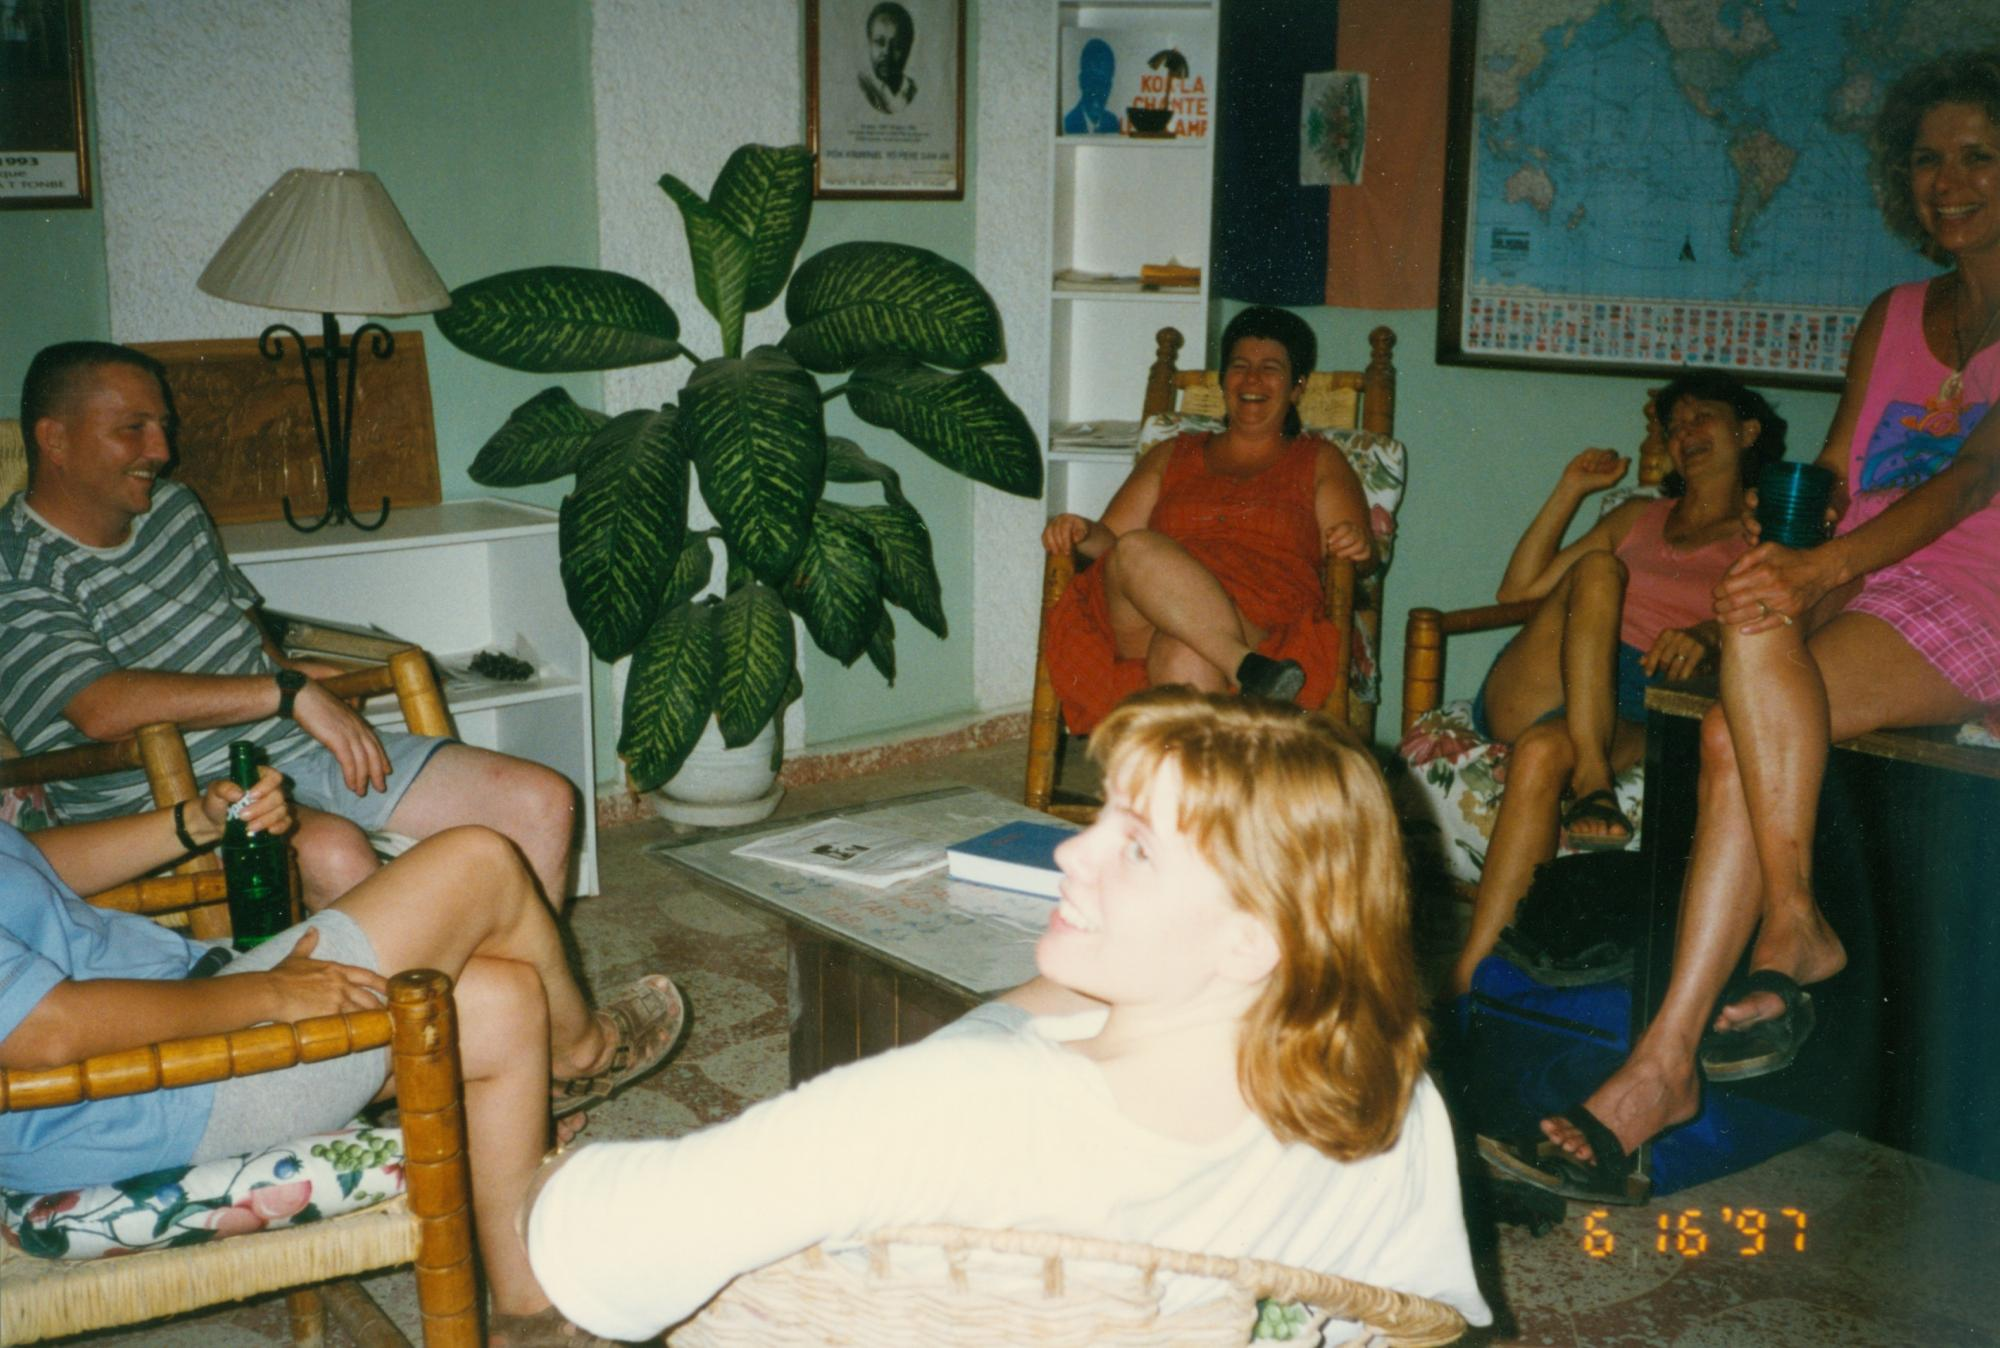 Maureen_1997_team_in_room_image30.jpg